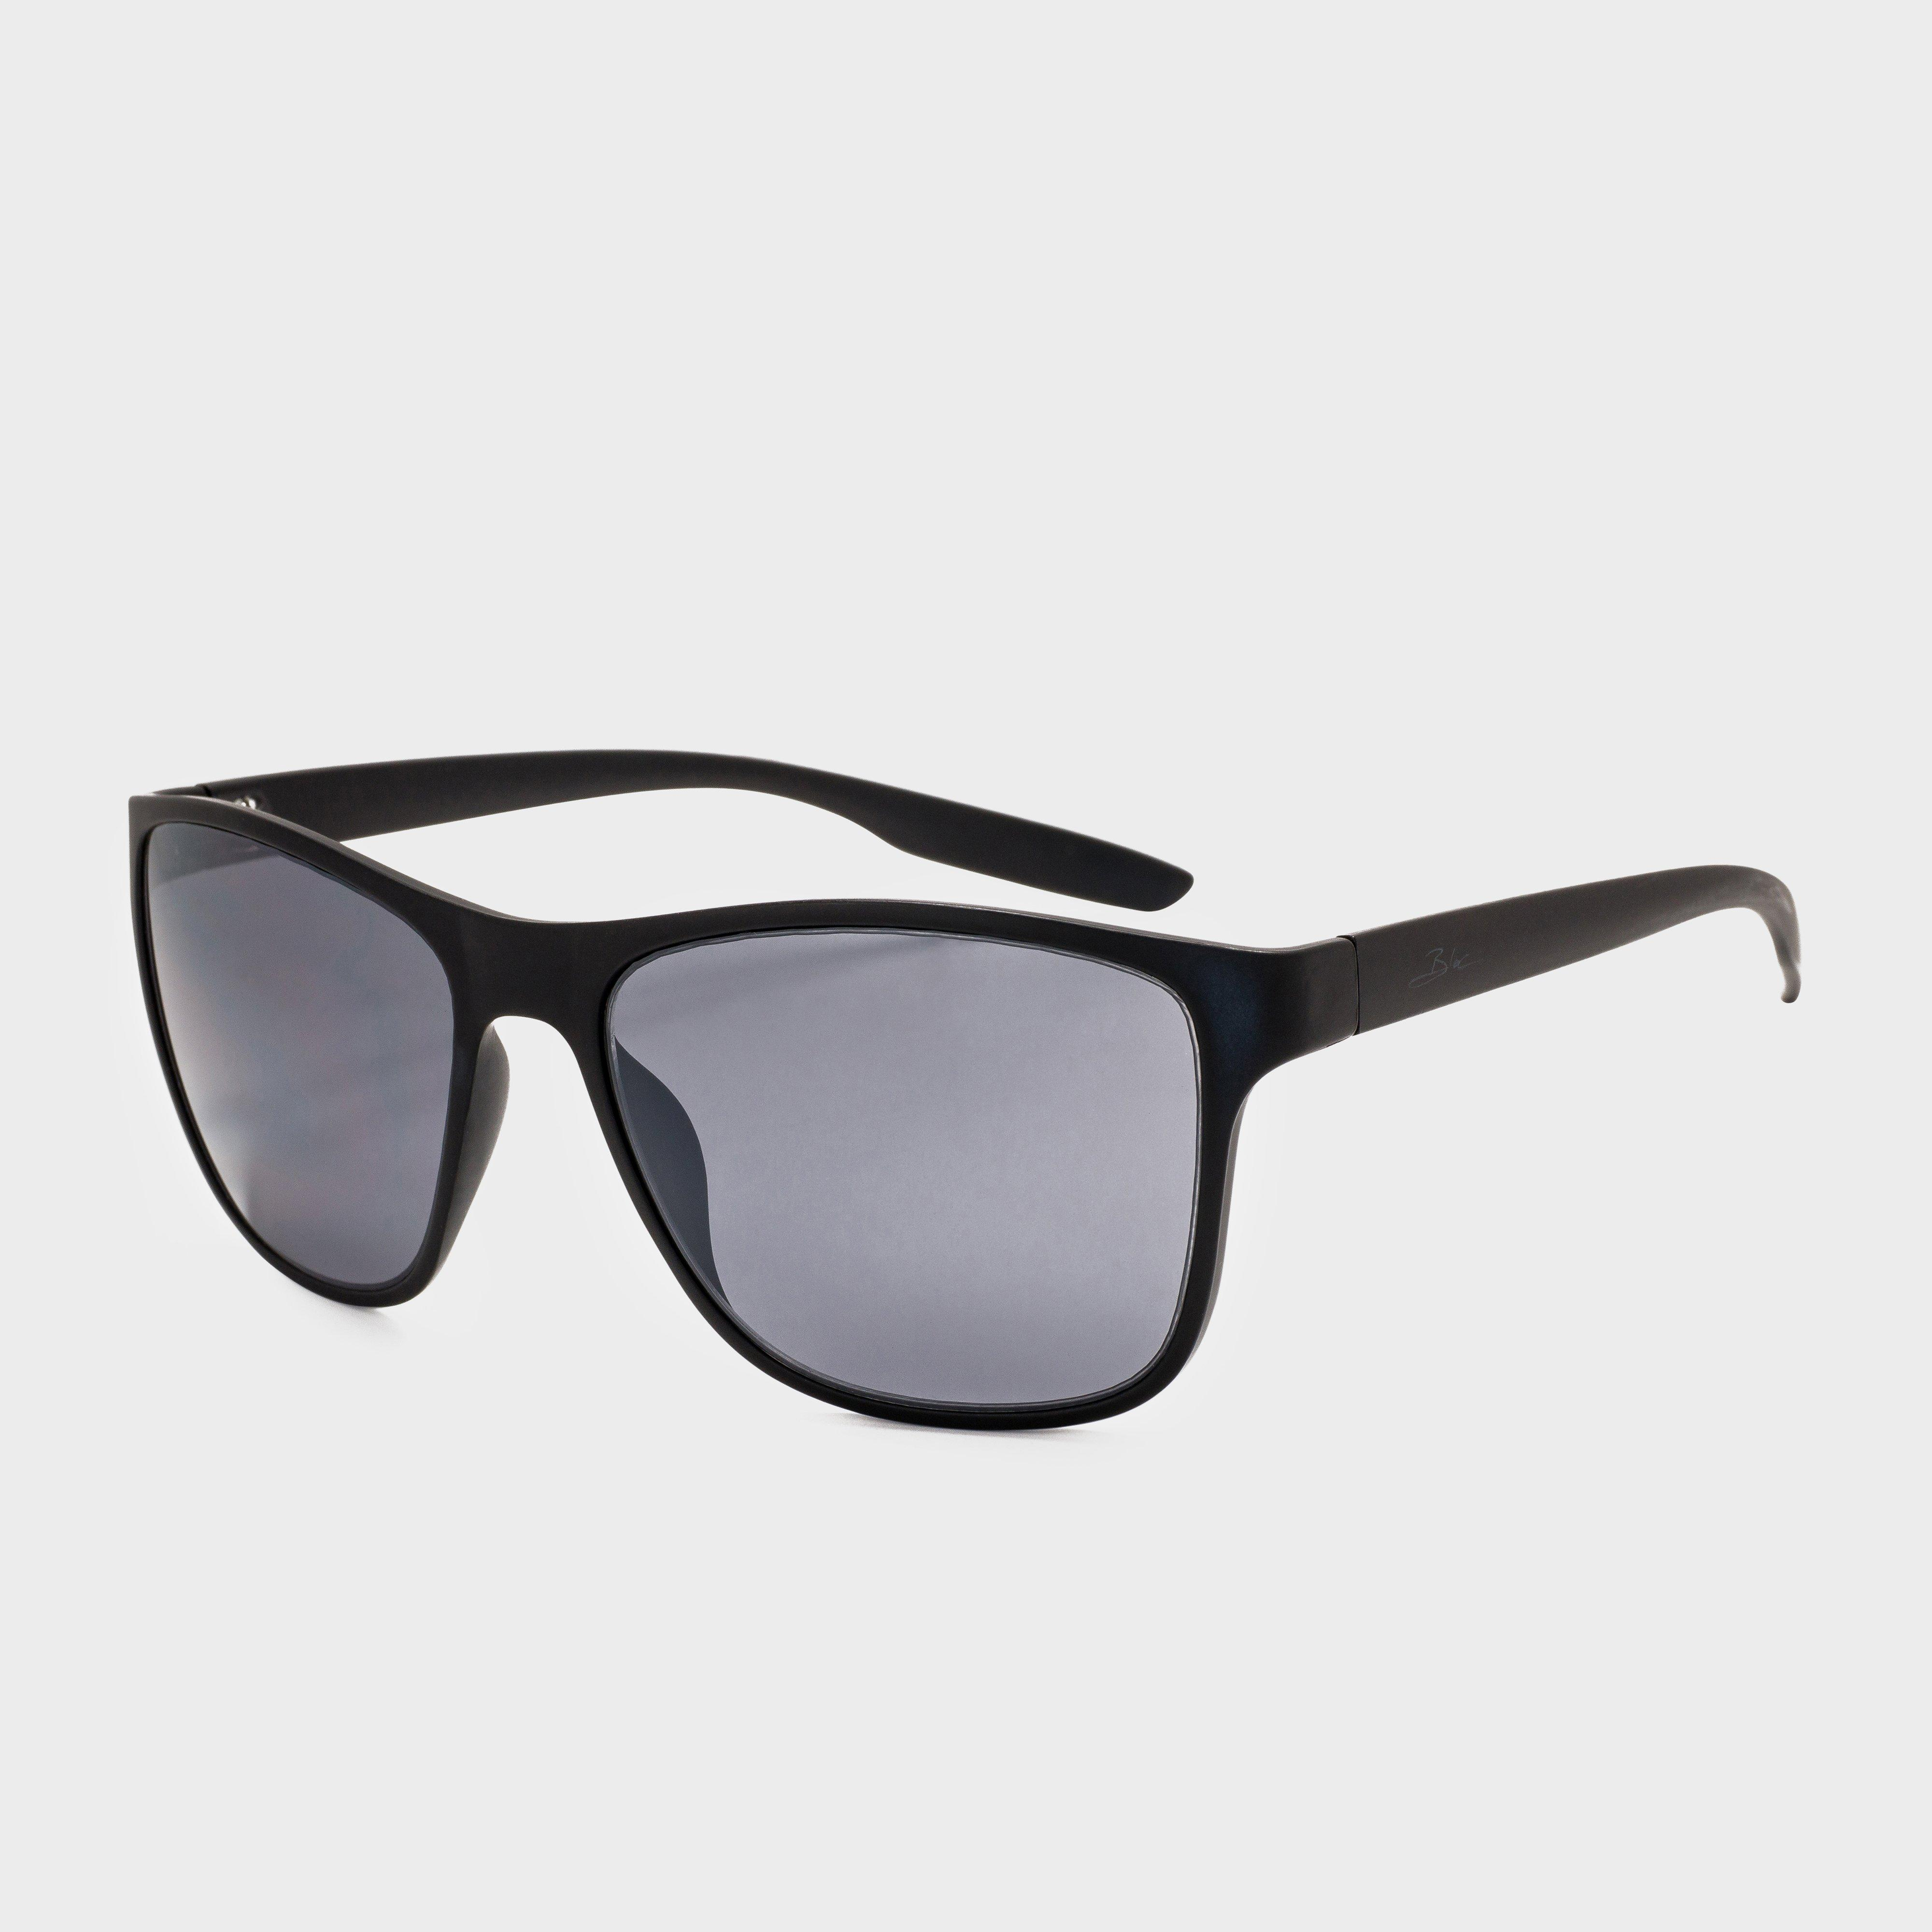 Bloc Cruise 2 F850 Sunglasses, Black